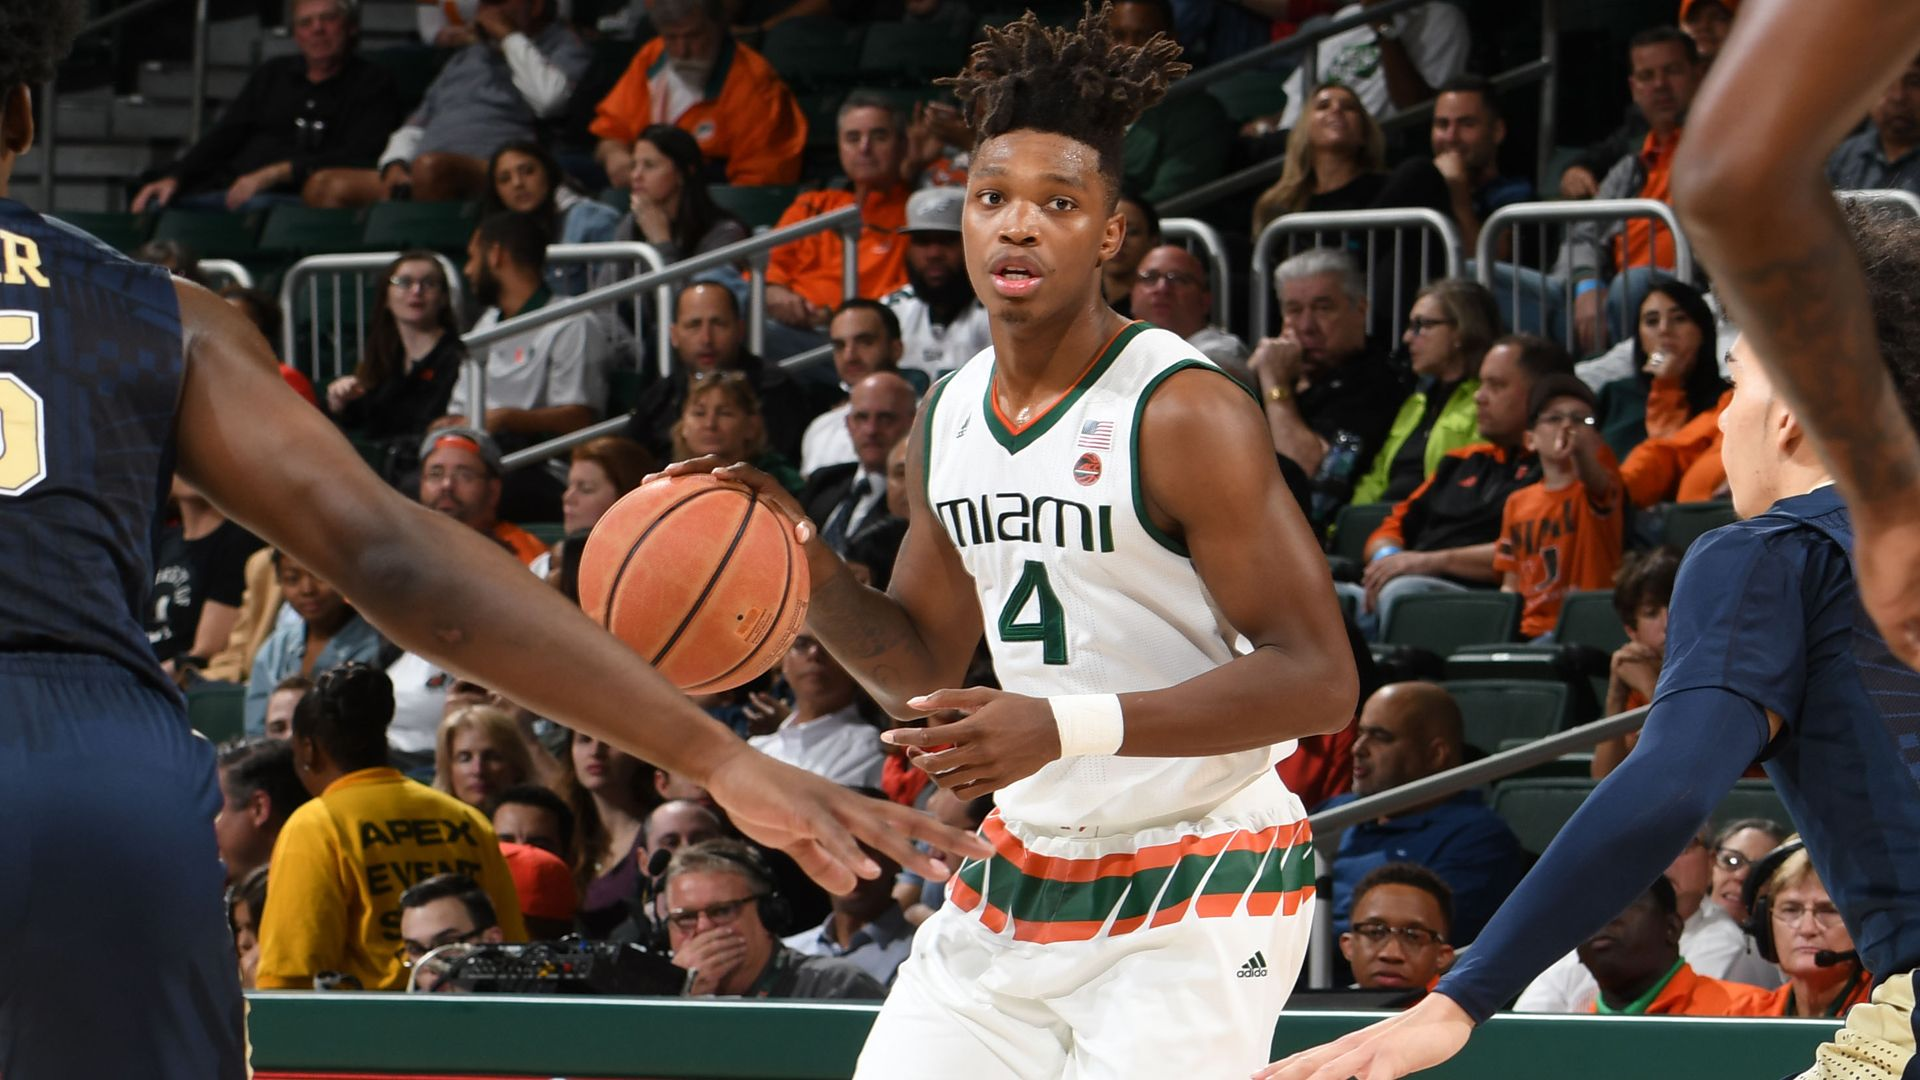 Canes Cage Panthers, 69-57